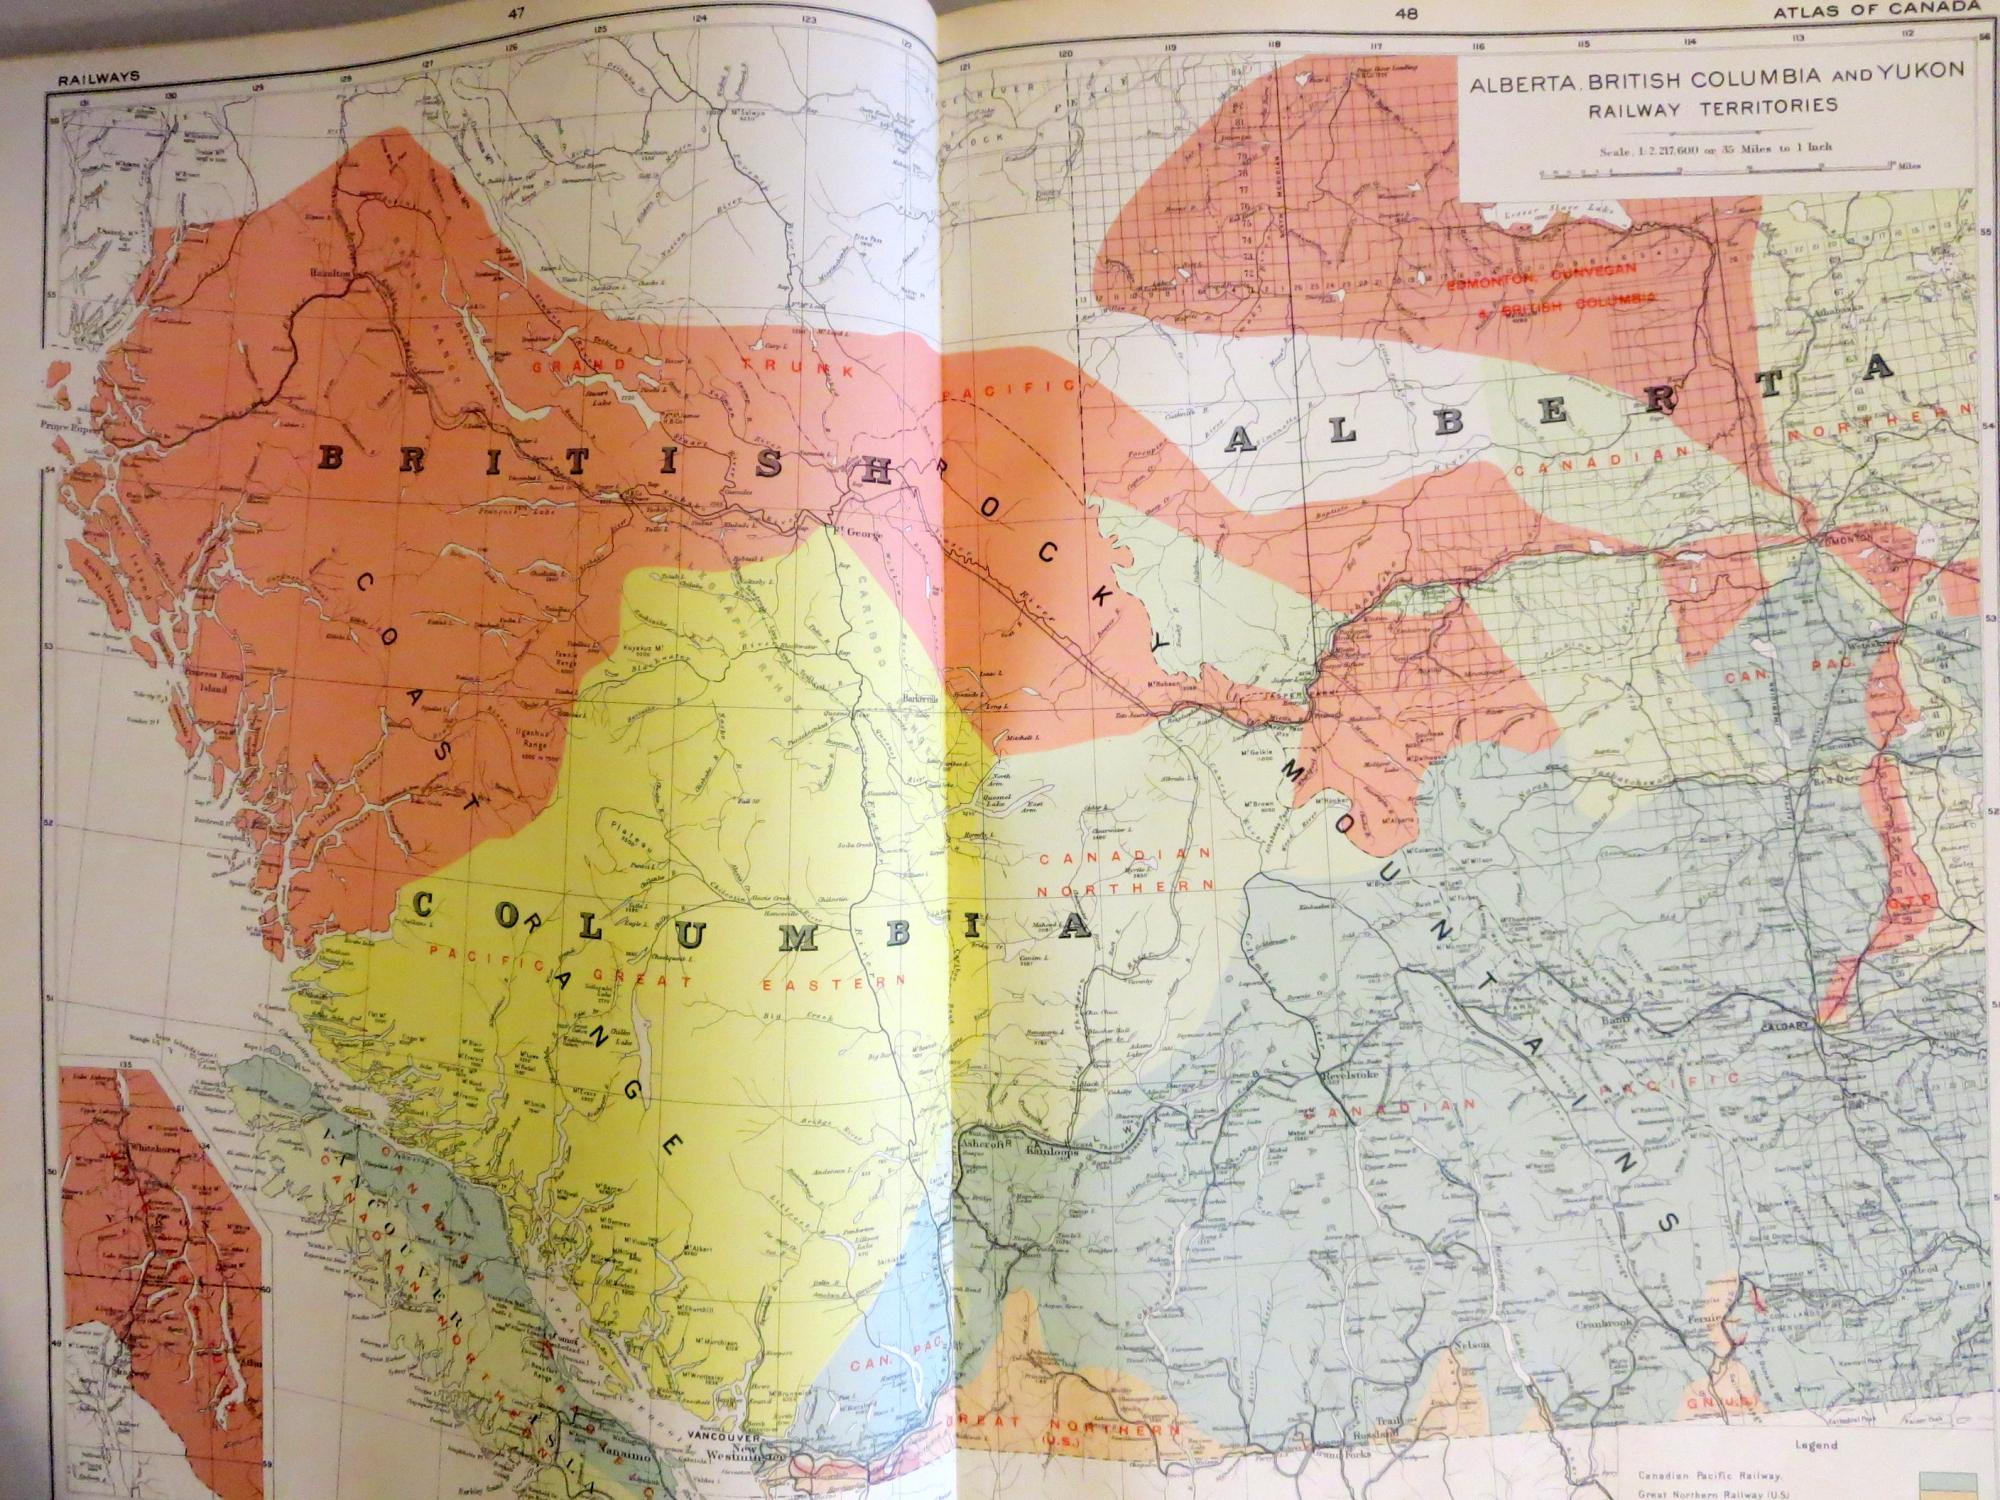 Atlas of canada department of the interior 1915 by chalifour je je atlas of canada department of the interior 1915 chalifour je gumiabroncs Gallery